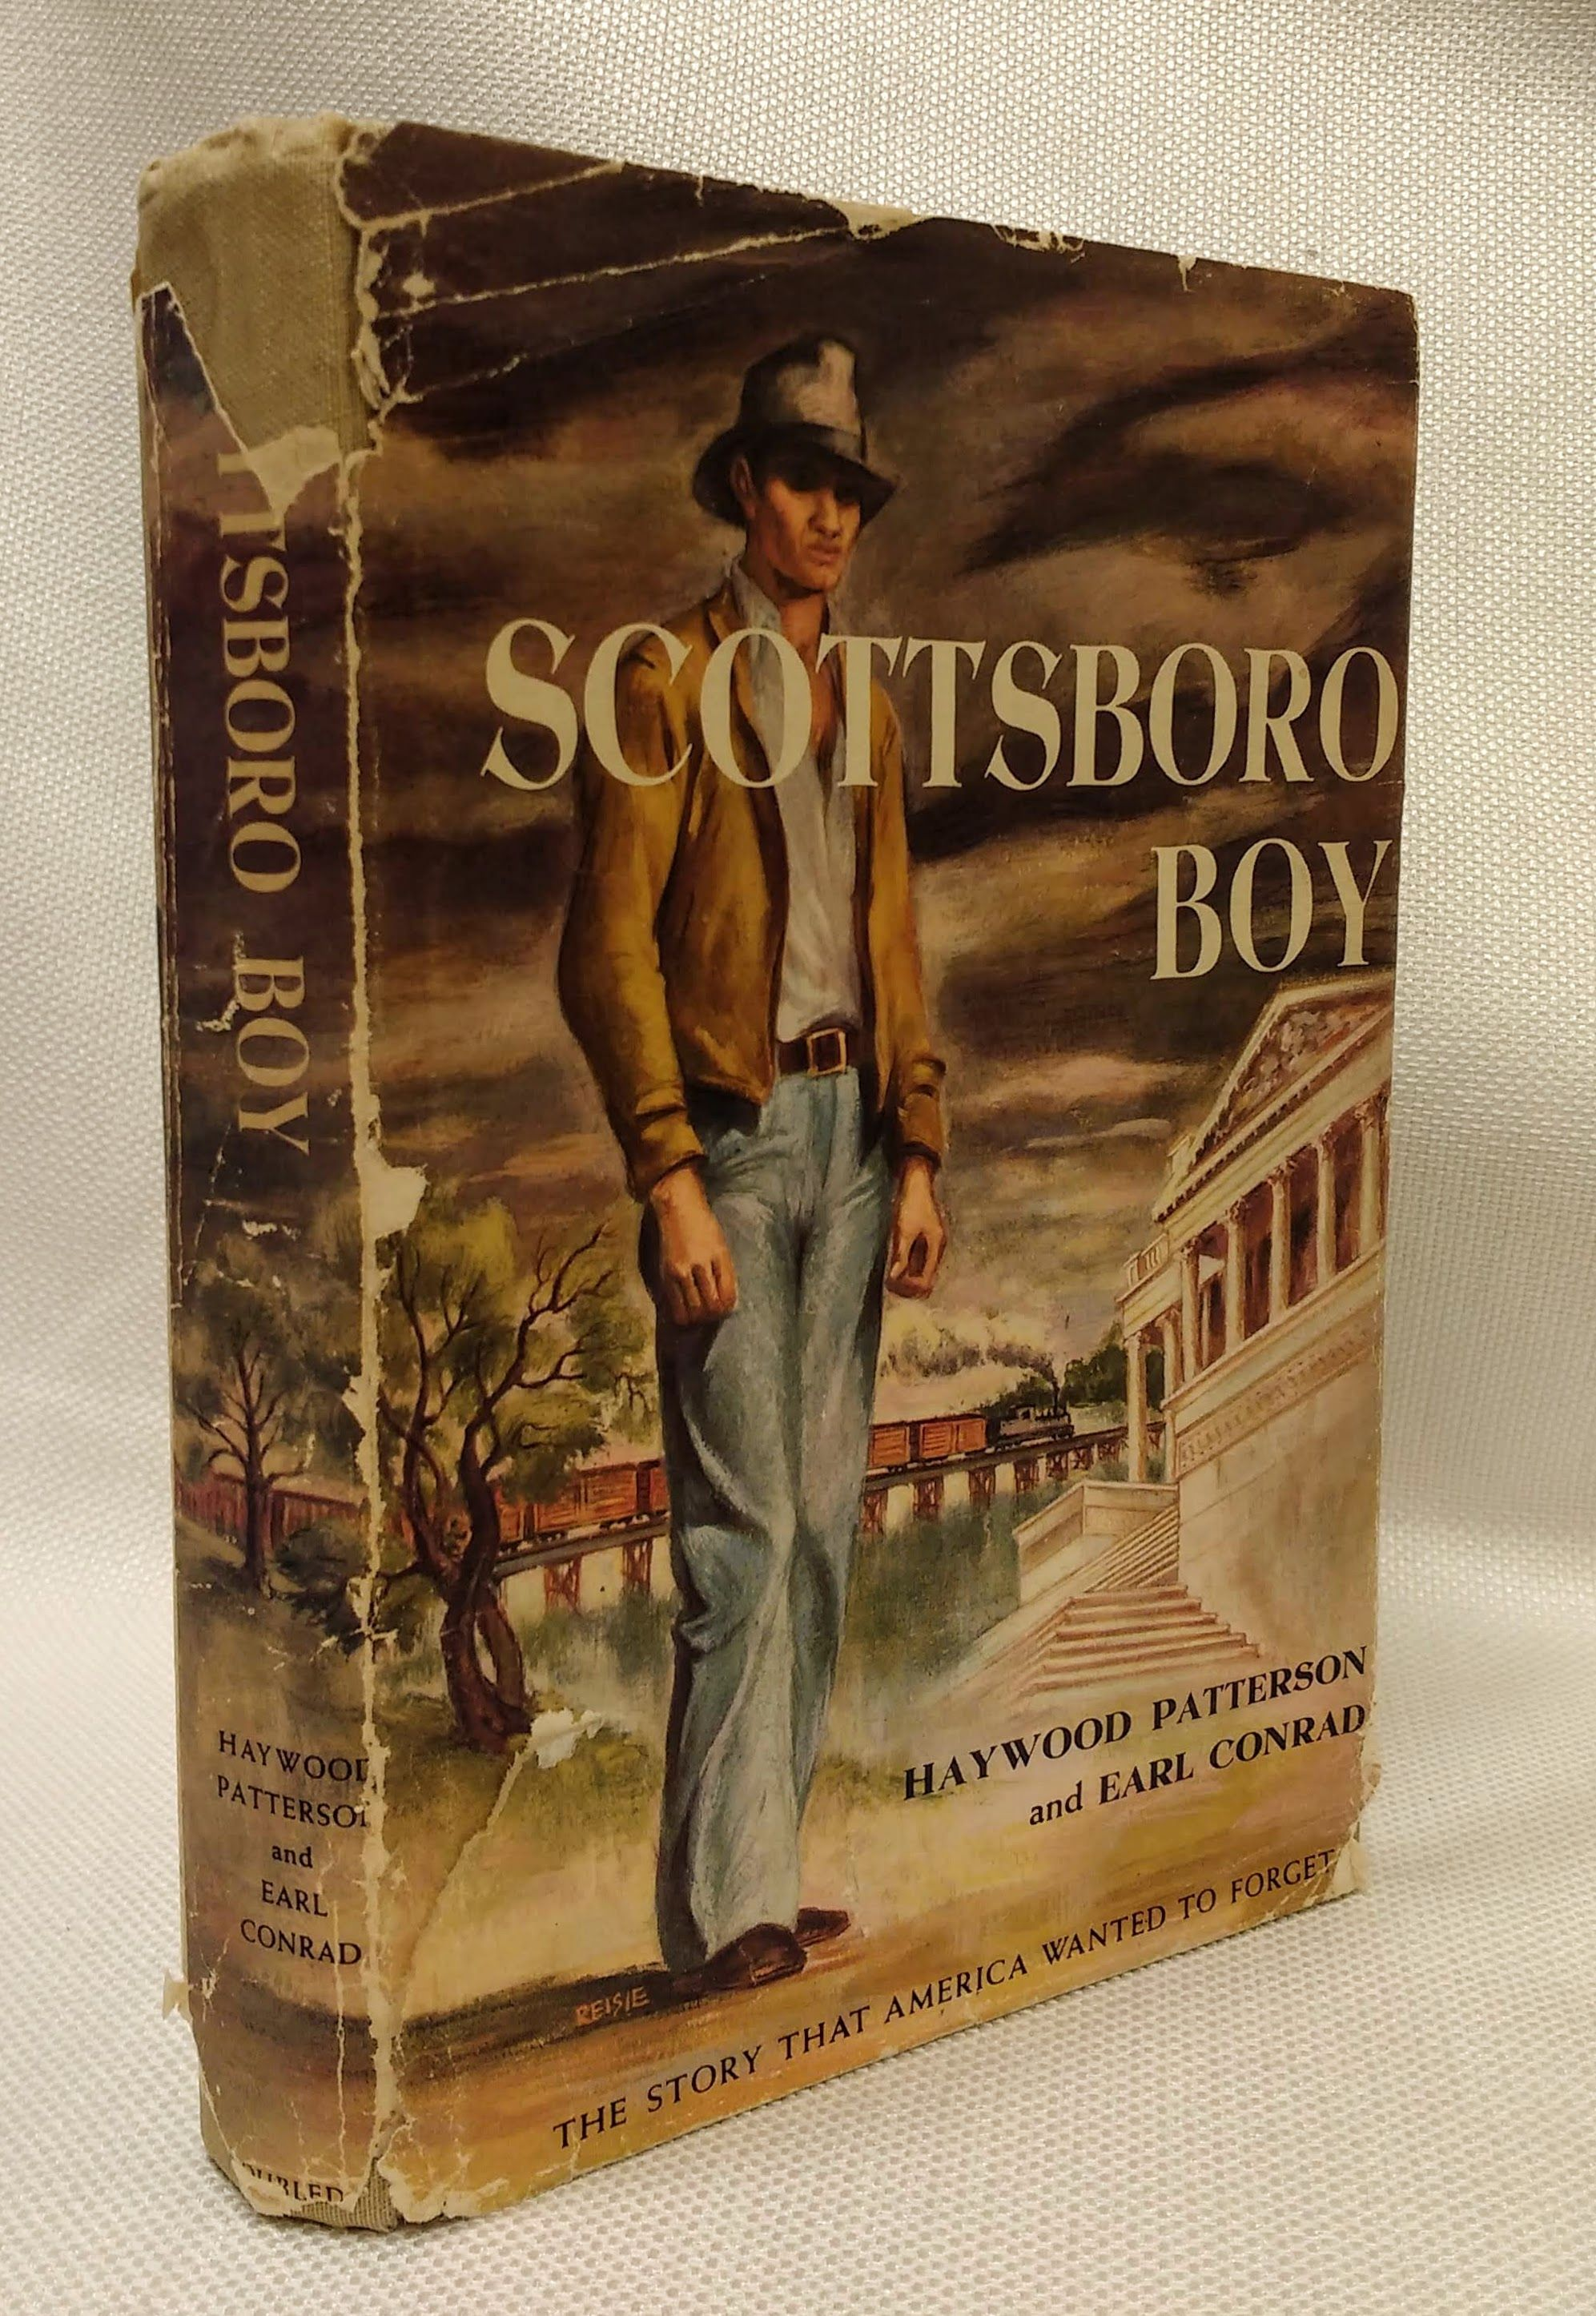 Scottsboro Boy, the story that America wanted to forget, Patterson, Haywood & Earl Conrad